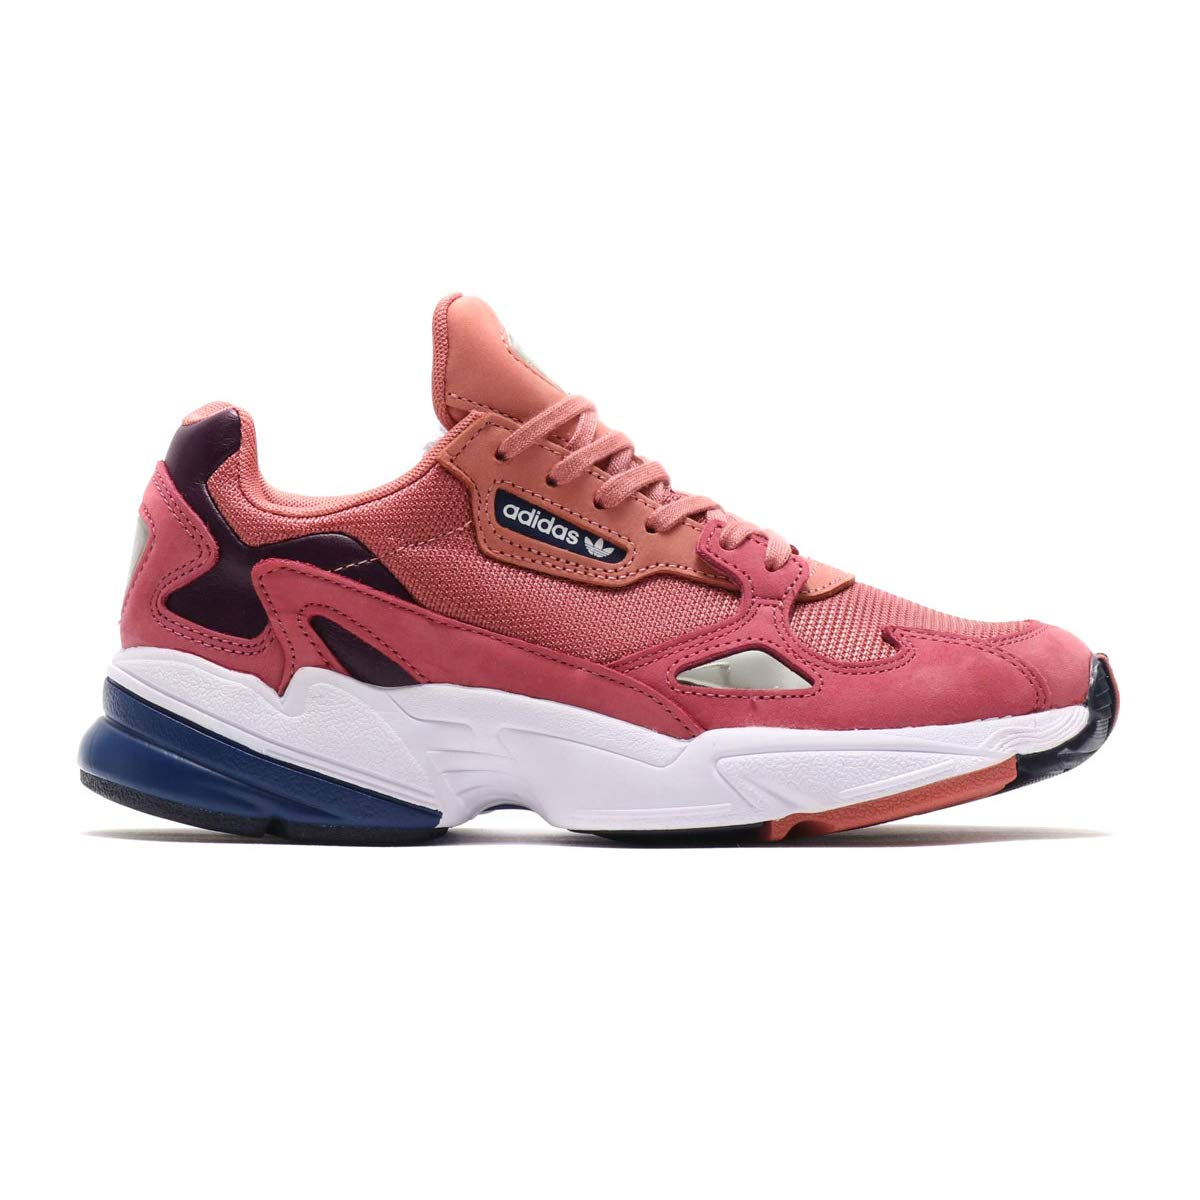 new style b272f 3a865 Amazon.com   adidas Falcon Womens in Raw Pink Dark Blue   Shoes